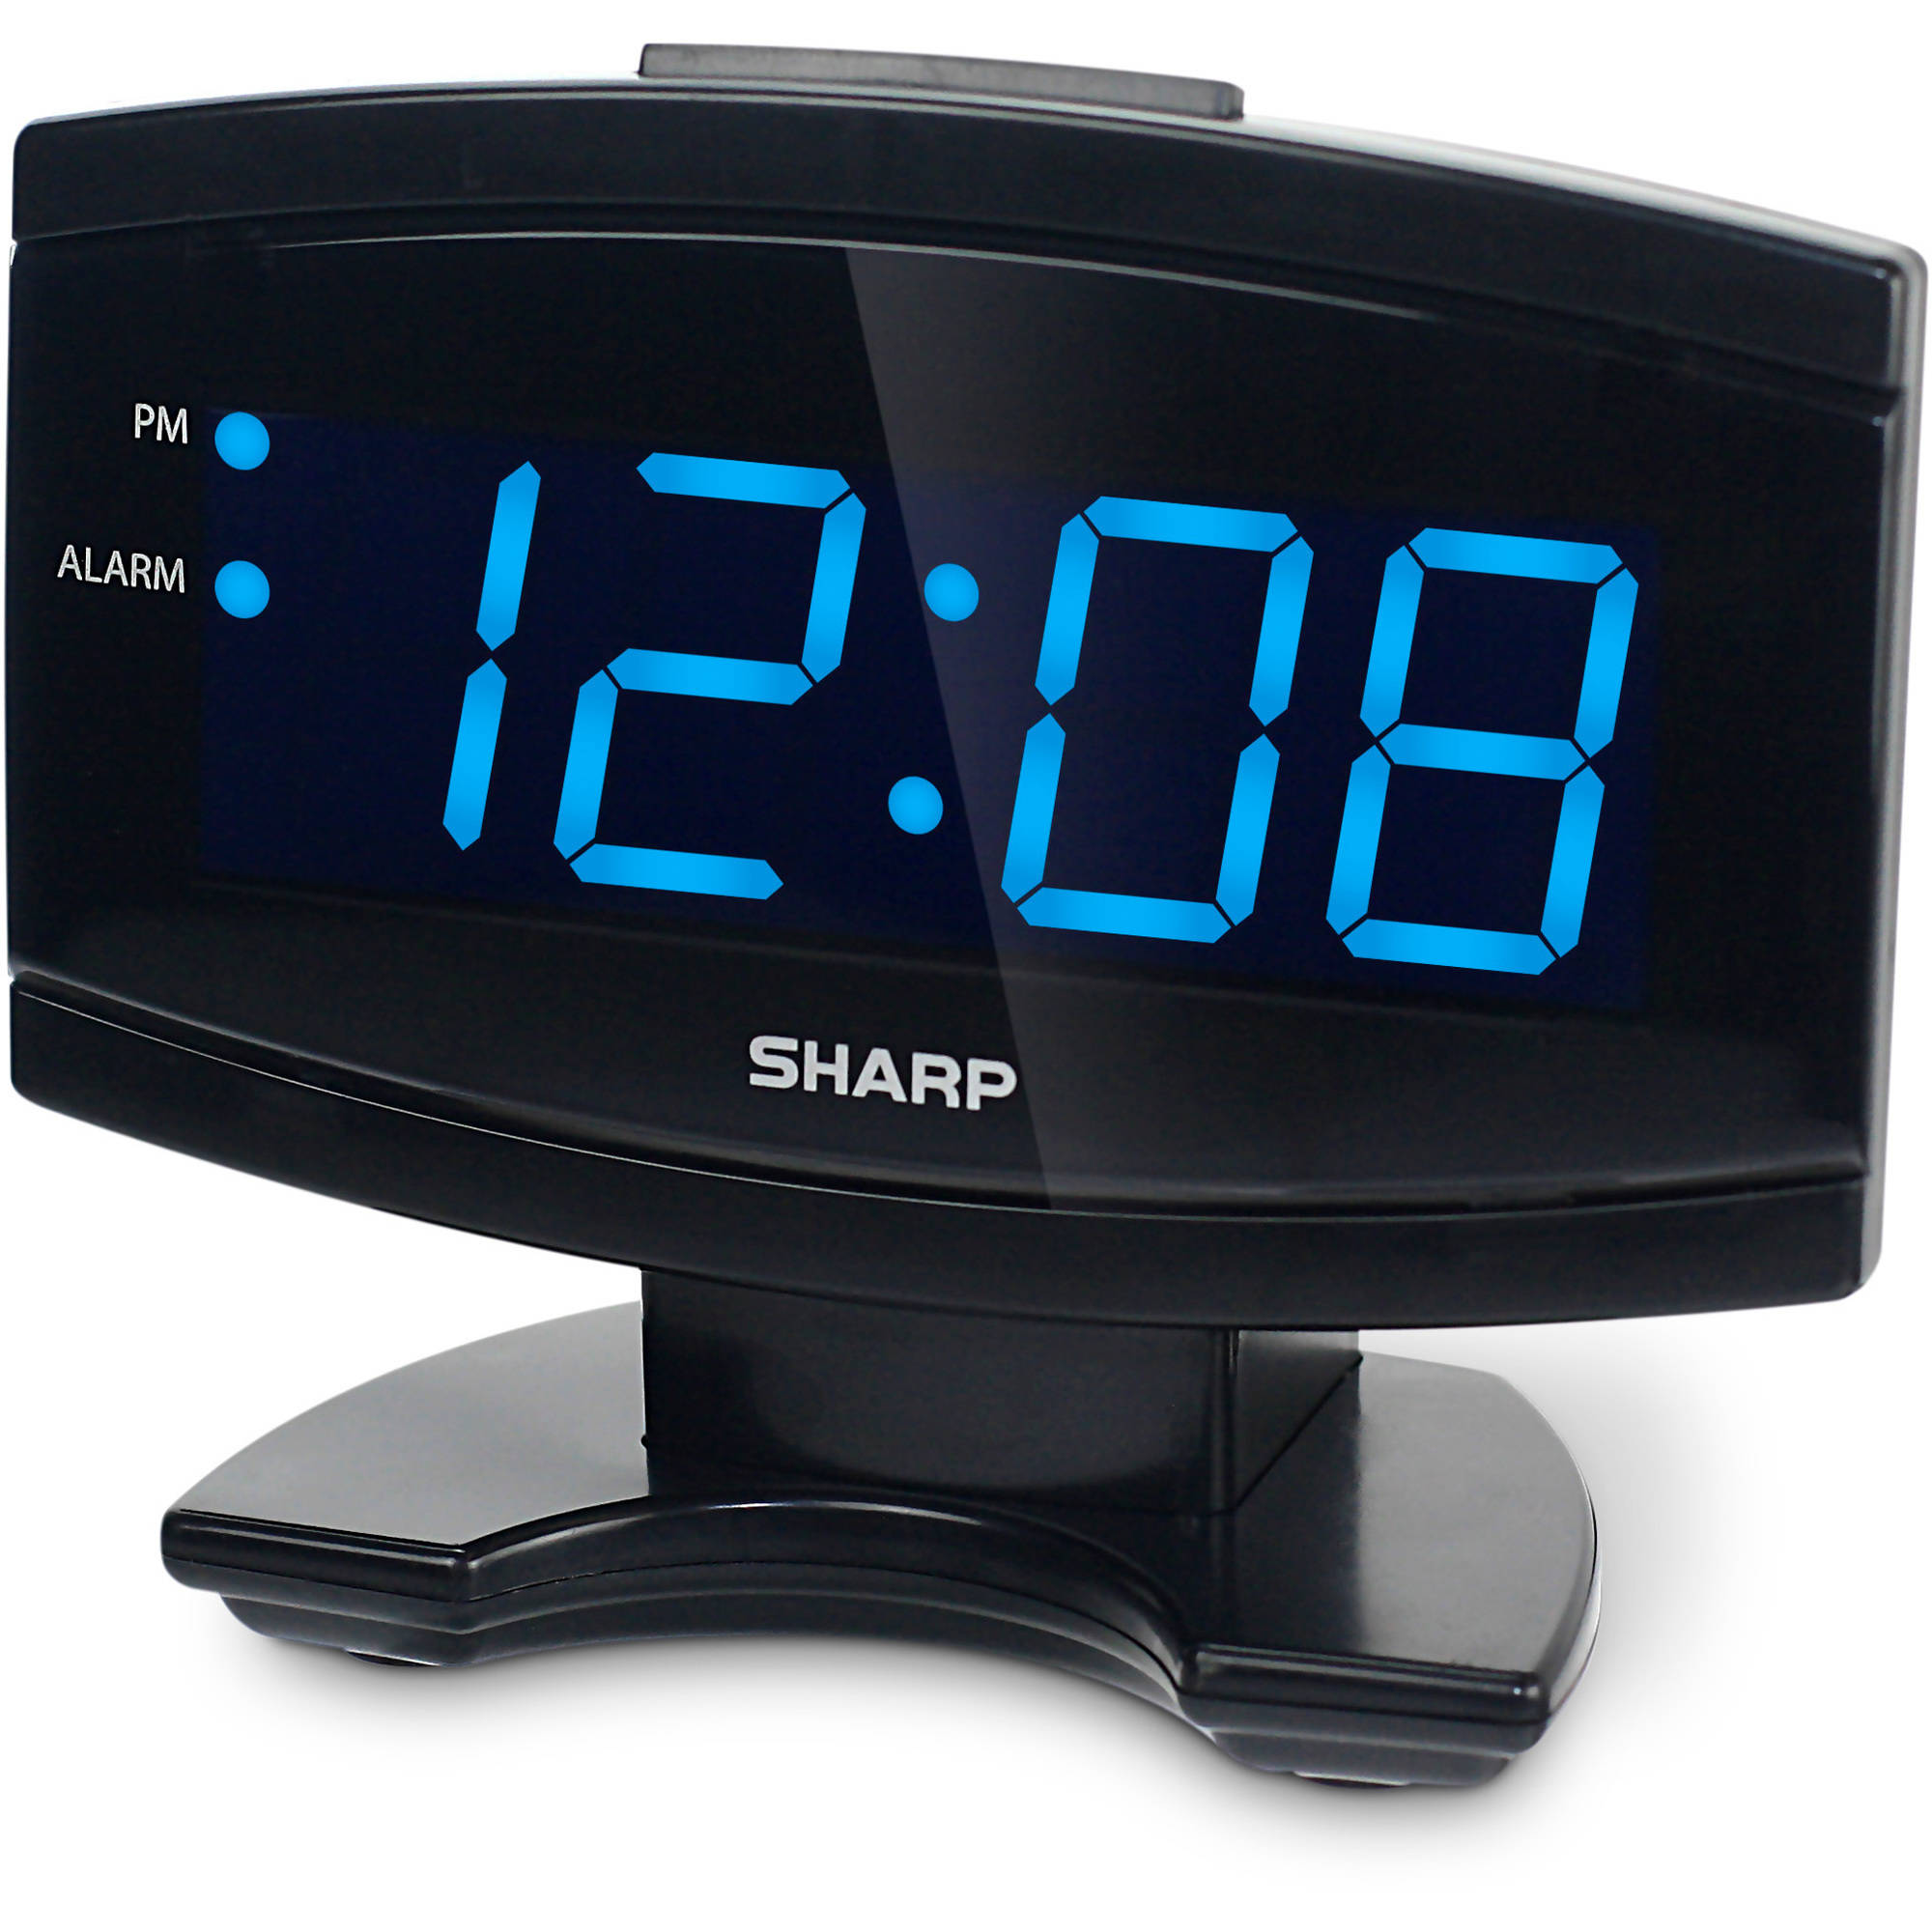 Sharp Blue LED Alarm Clock, Black